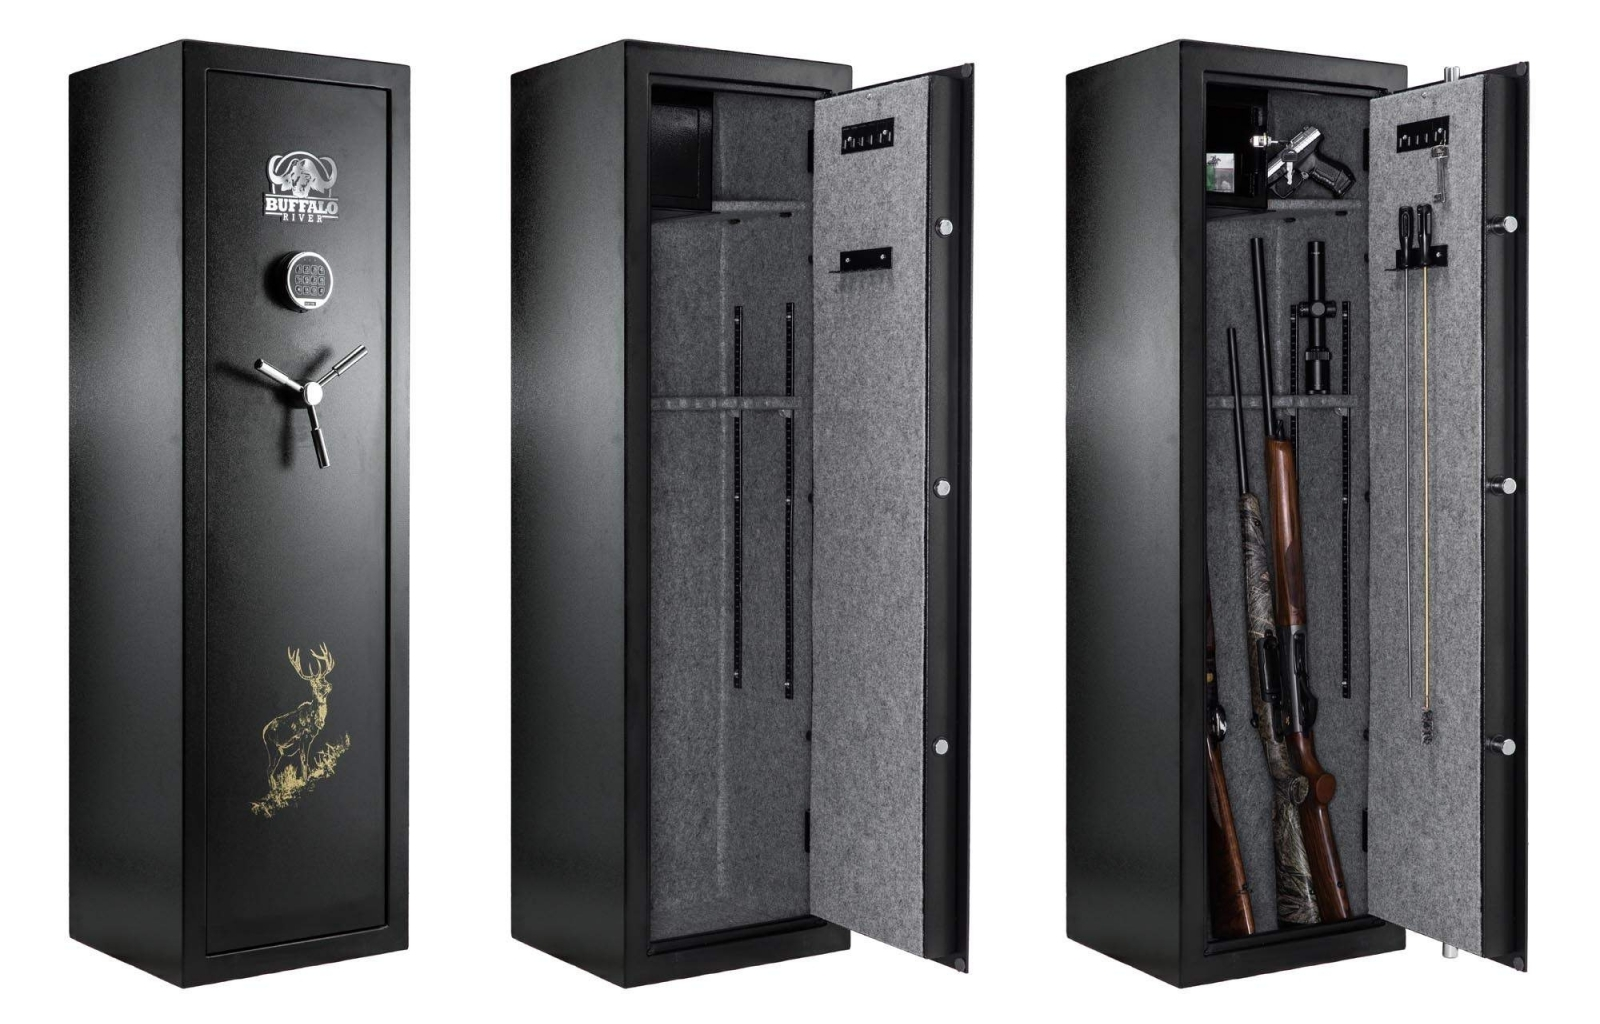 armoire forte buffalo digital premium pour 10 armes armurerie loisir. Black Bedroom Furniture Sets. Home Design Ideas